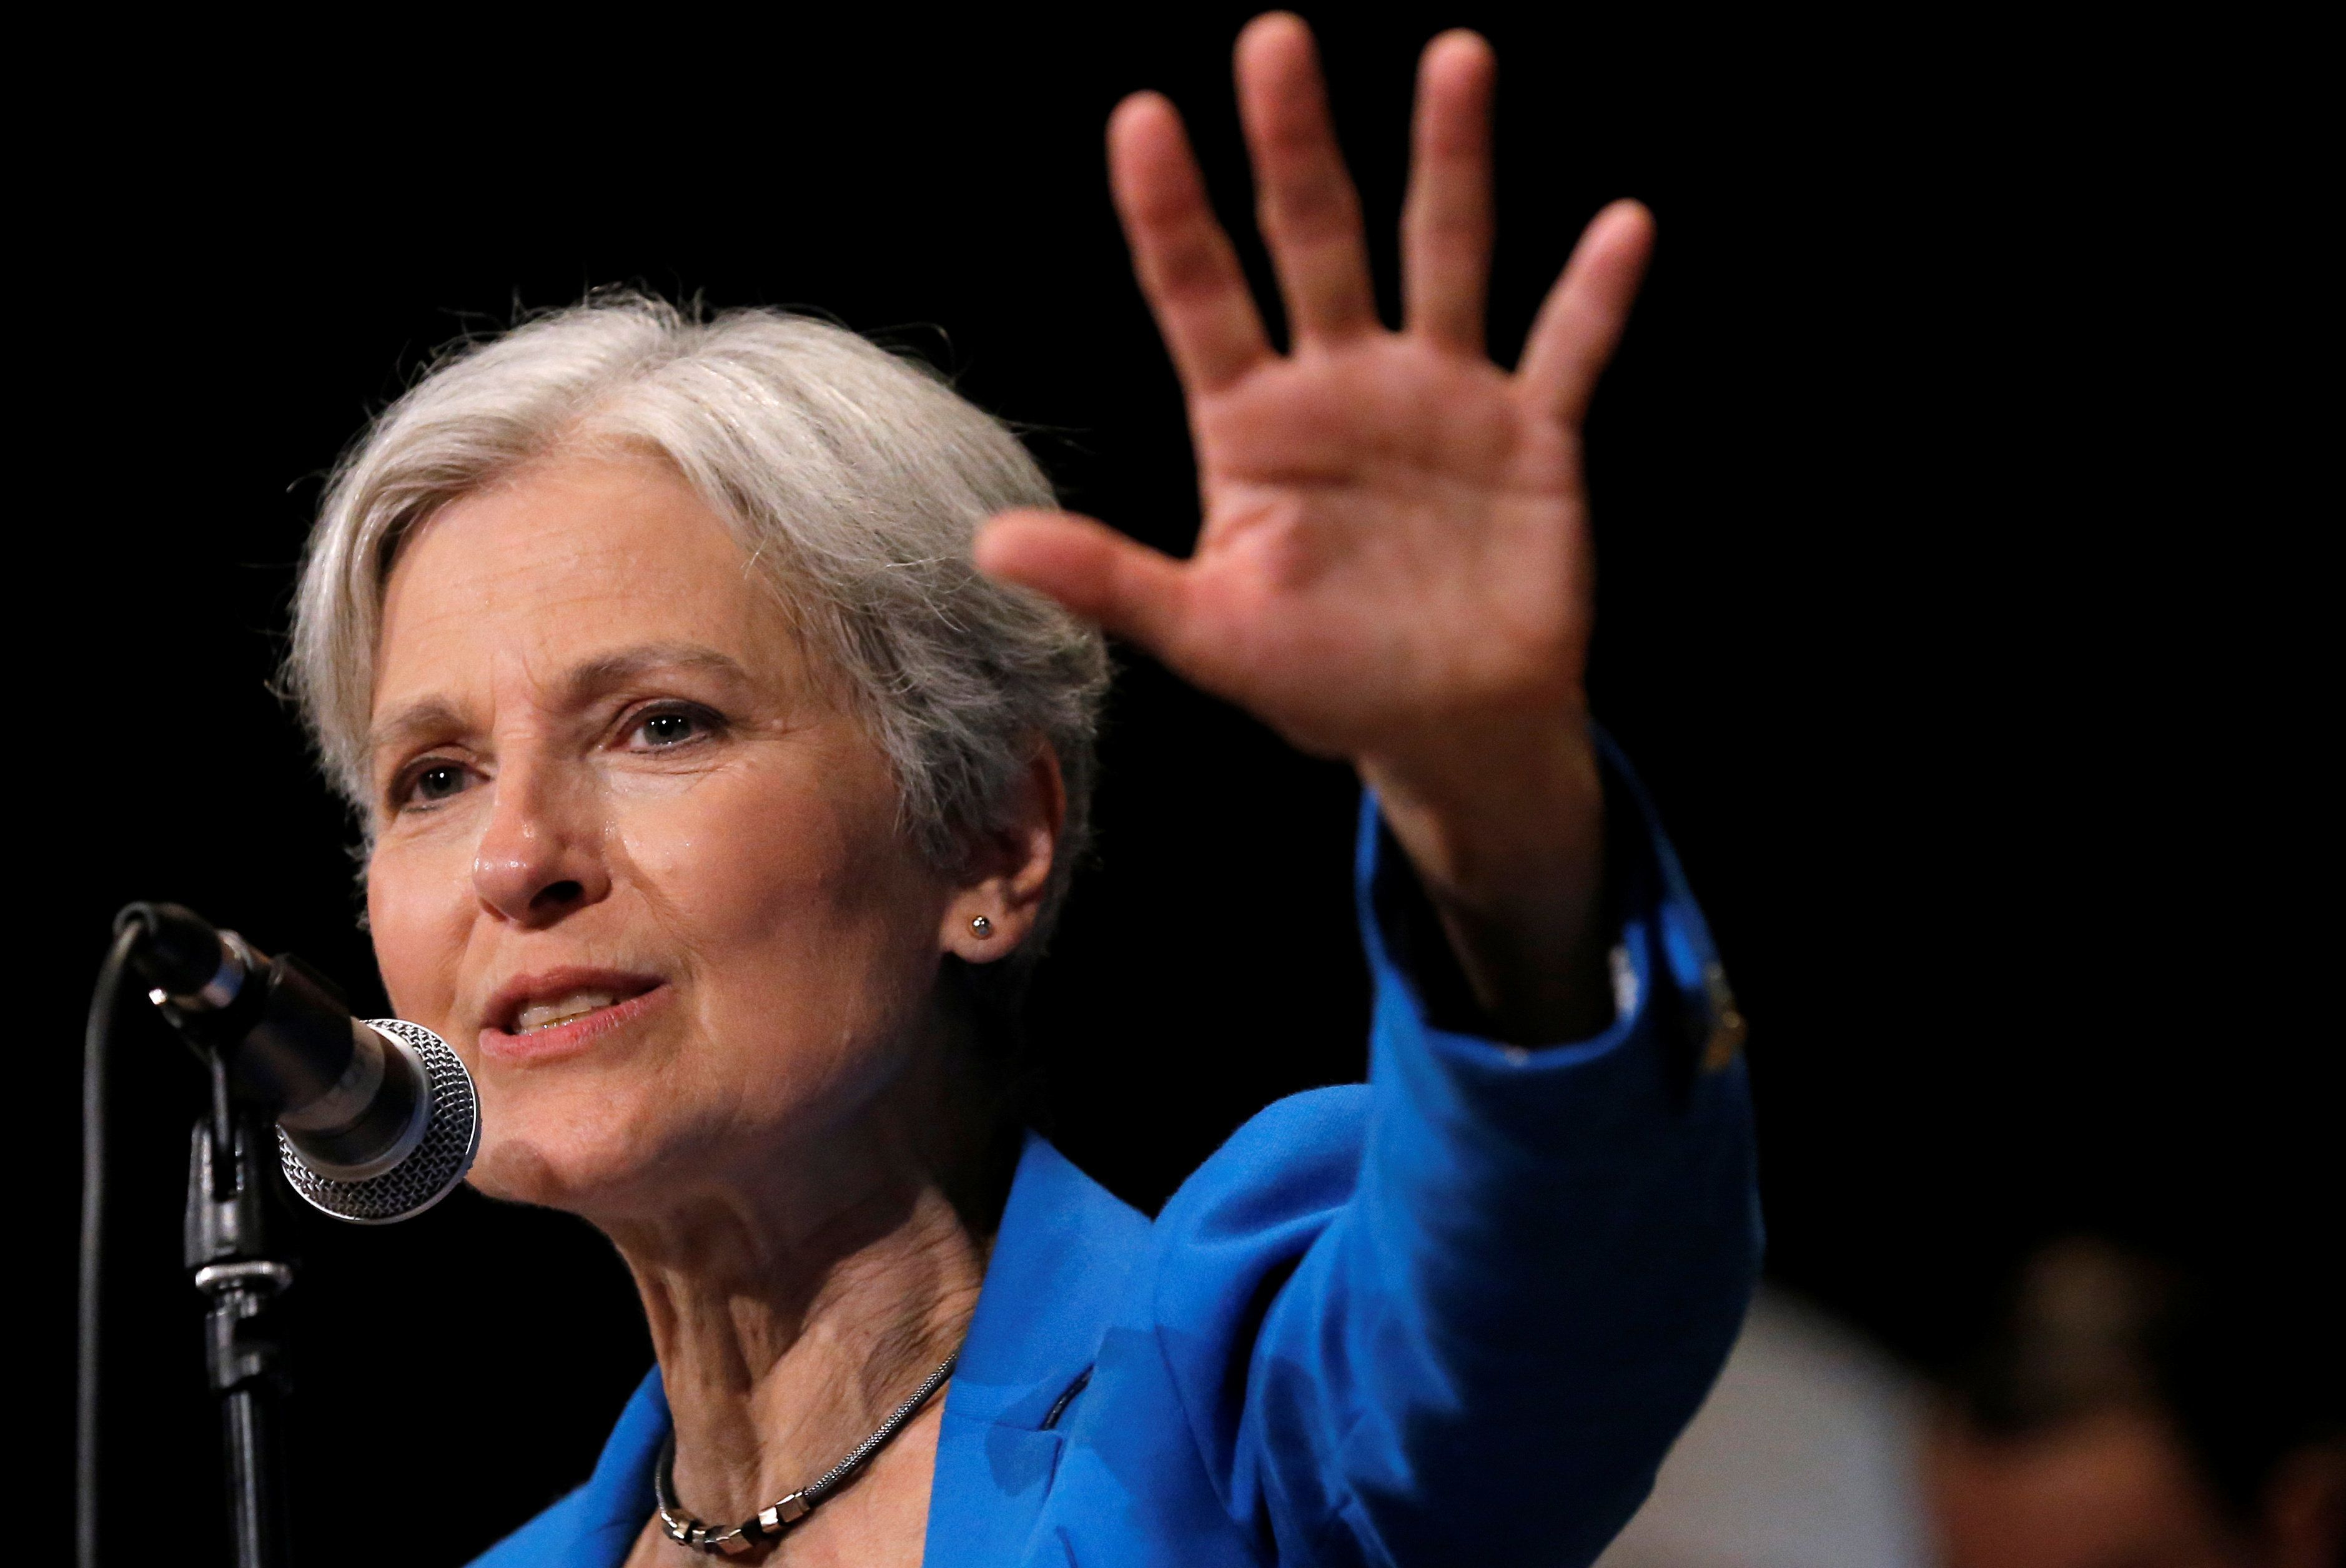 Jill Stein's Michigan election recount faces an uncertain future after a federal judge halted it on Wednesday night.